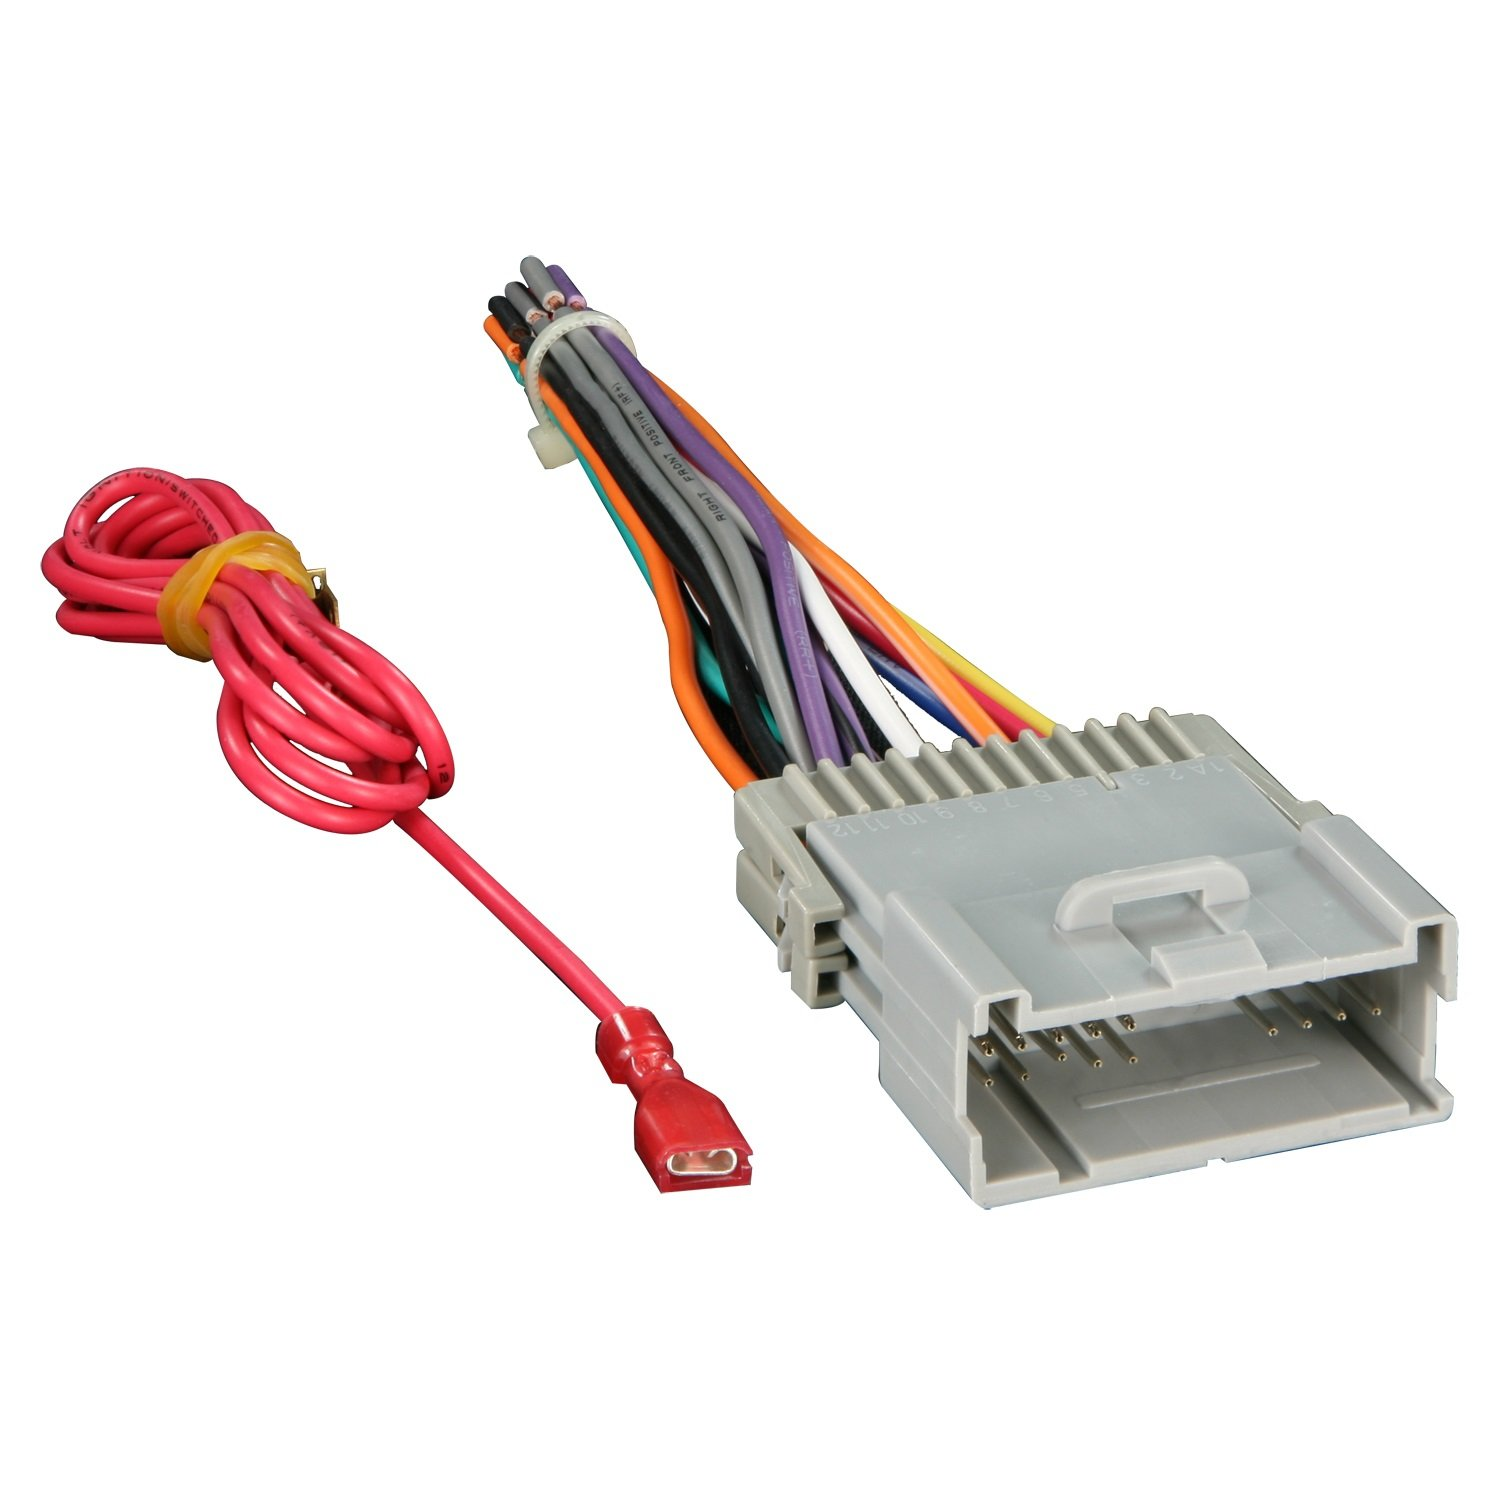 61eewxp9orL._SL1500_ amazon com metra 70 2003 radio wiring harness for gm 98 08 wire harness doesn't fit at bakdesigns.co